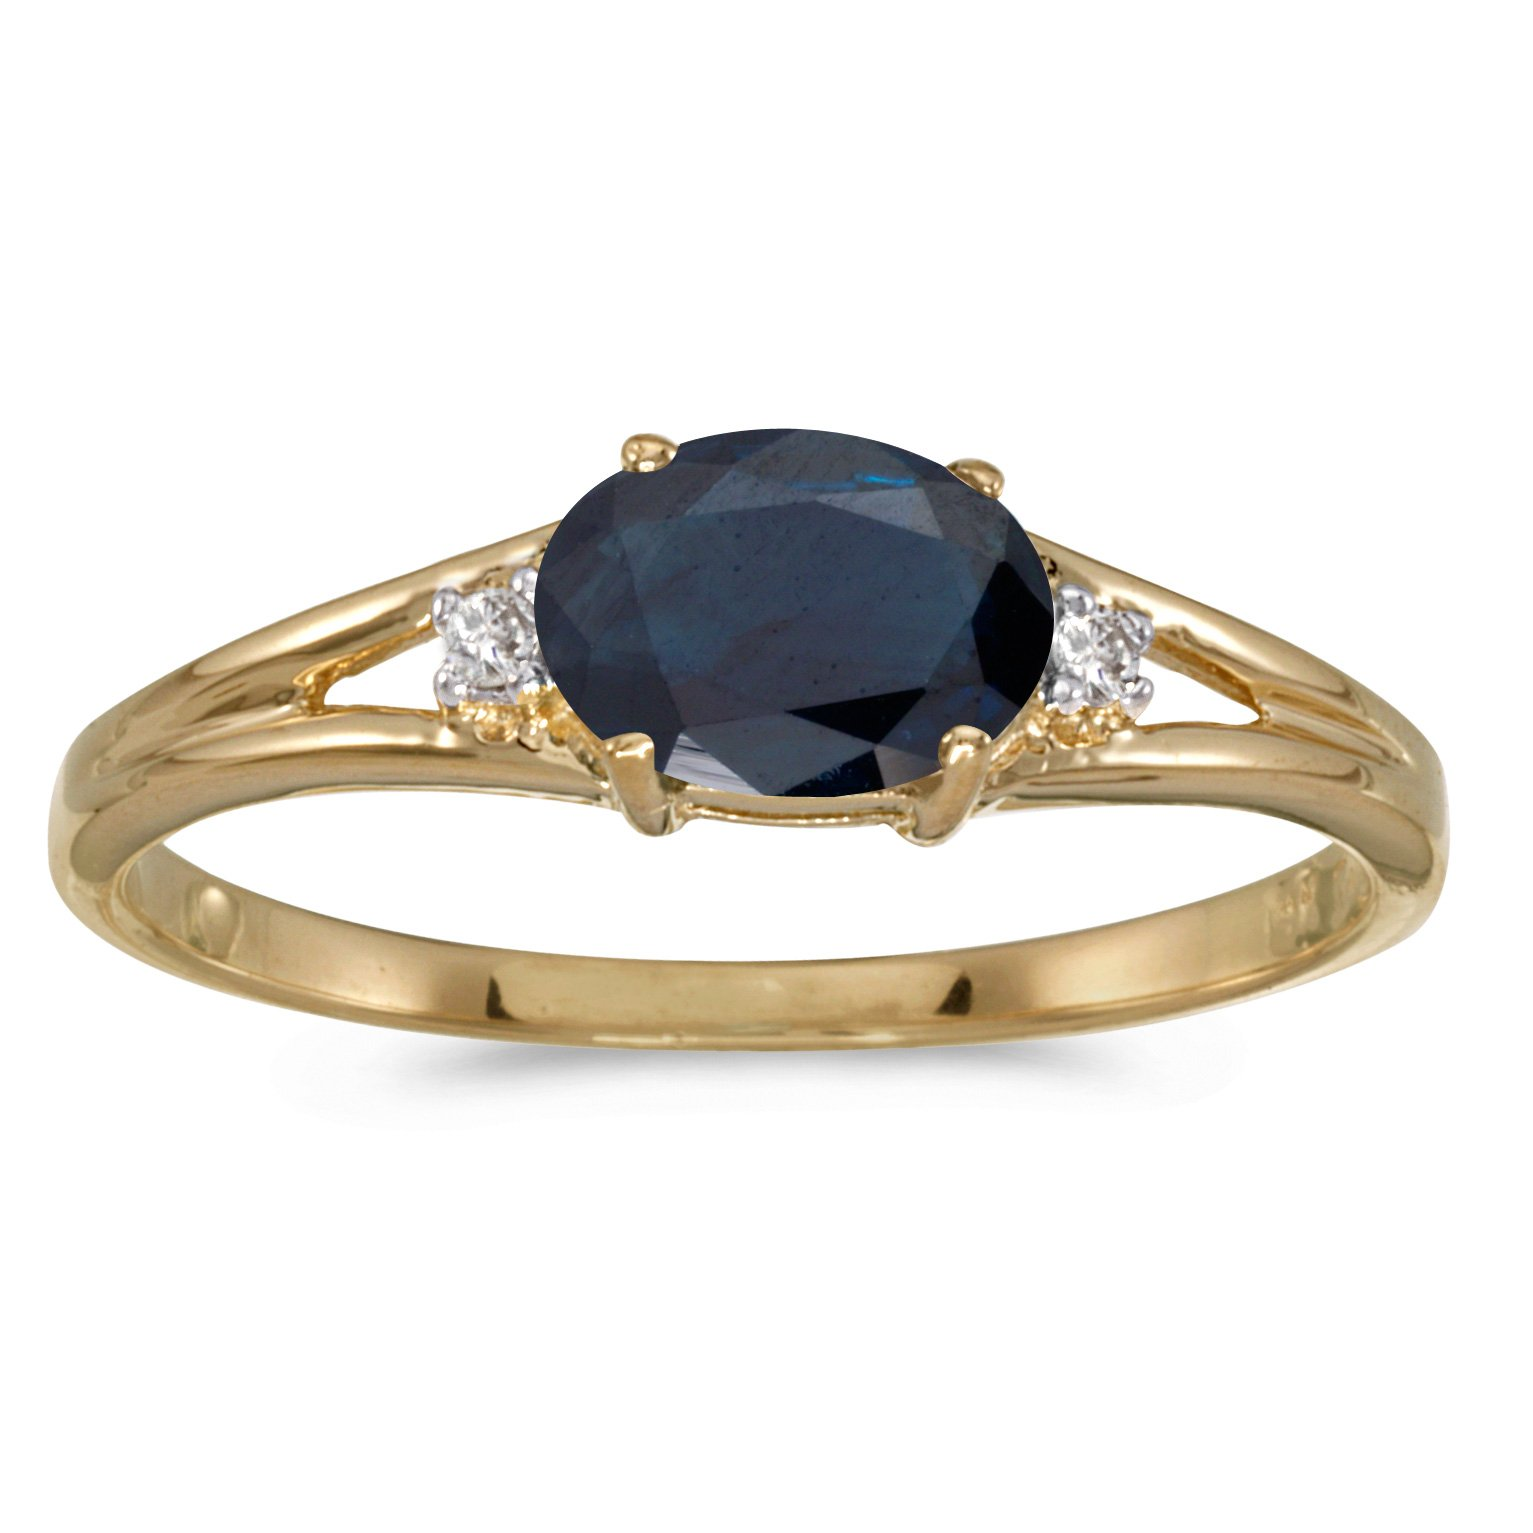 14k Yellow Gold Oval Sapphire And Diamond Ring (Size 5) by Direct-Jewelry (Image #1)